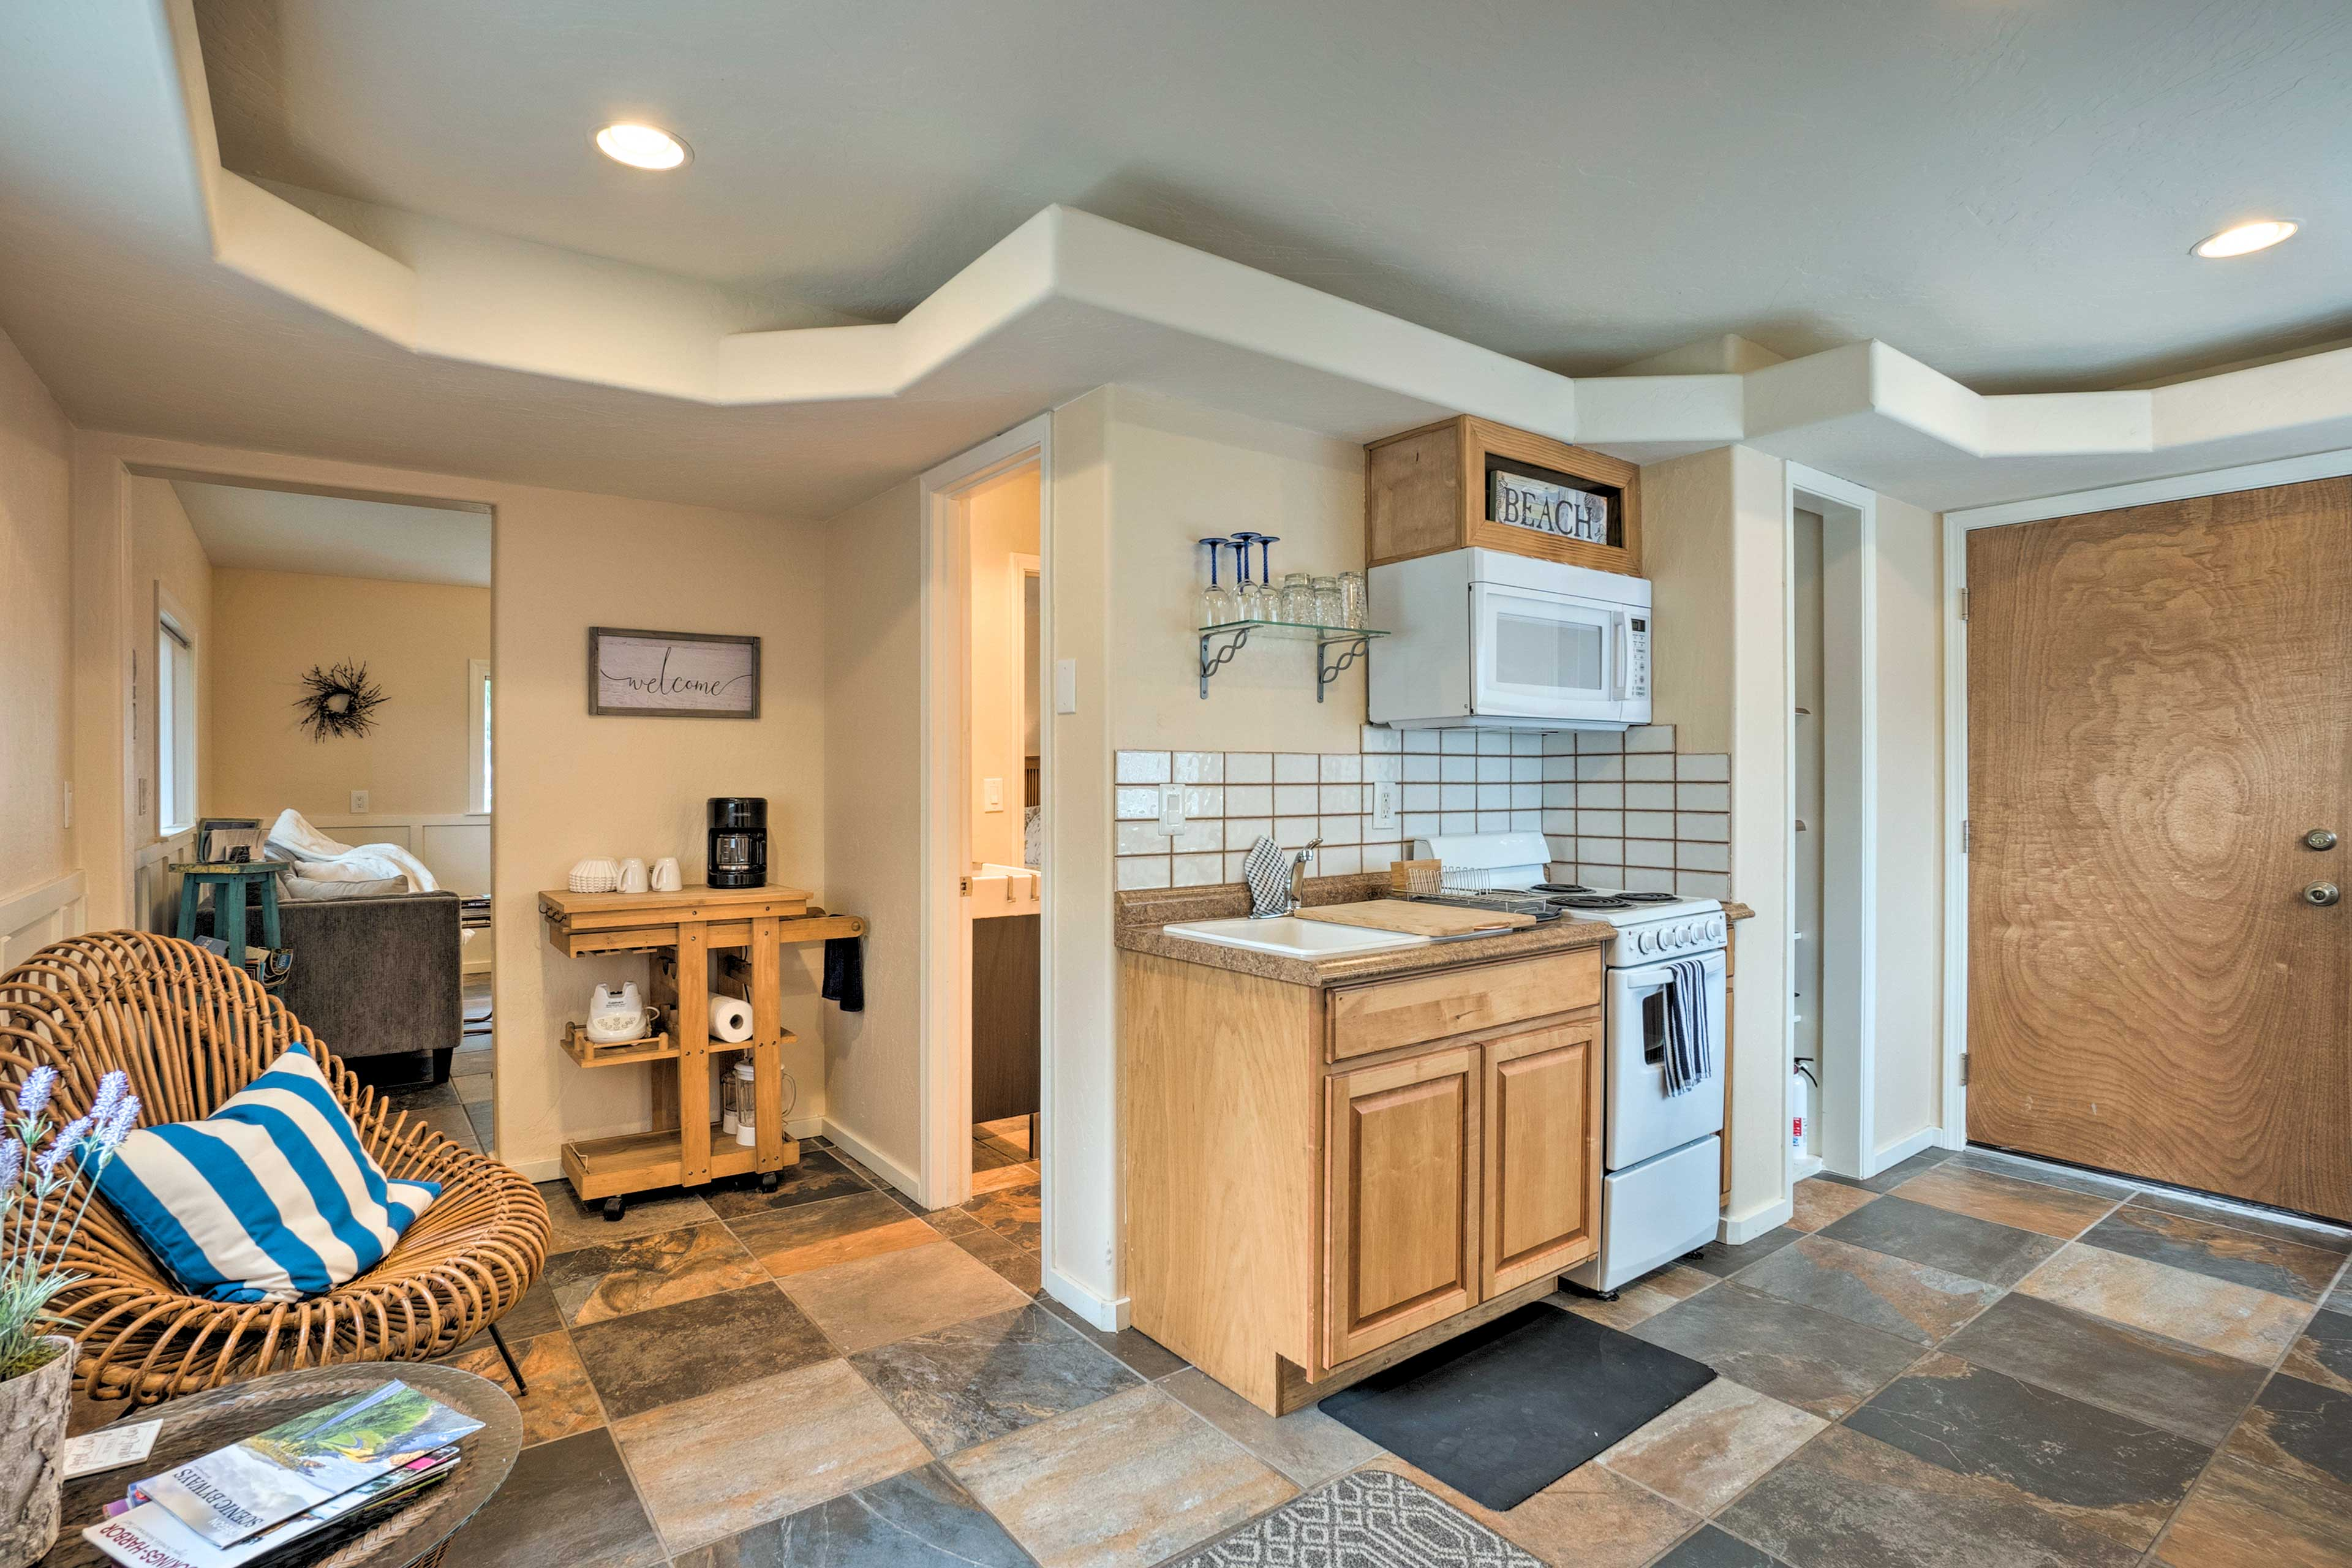 The well-equipped kitchenette features all your necessary appliances.